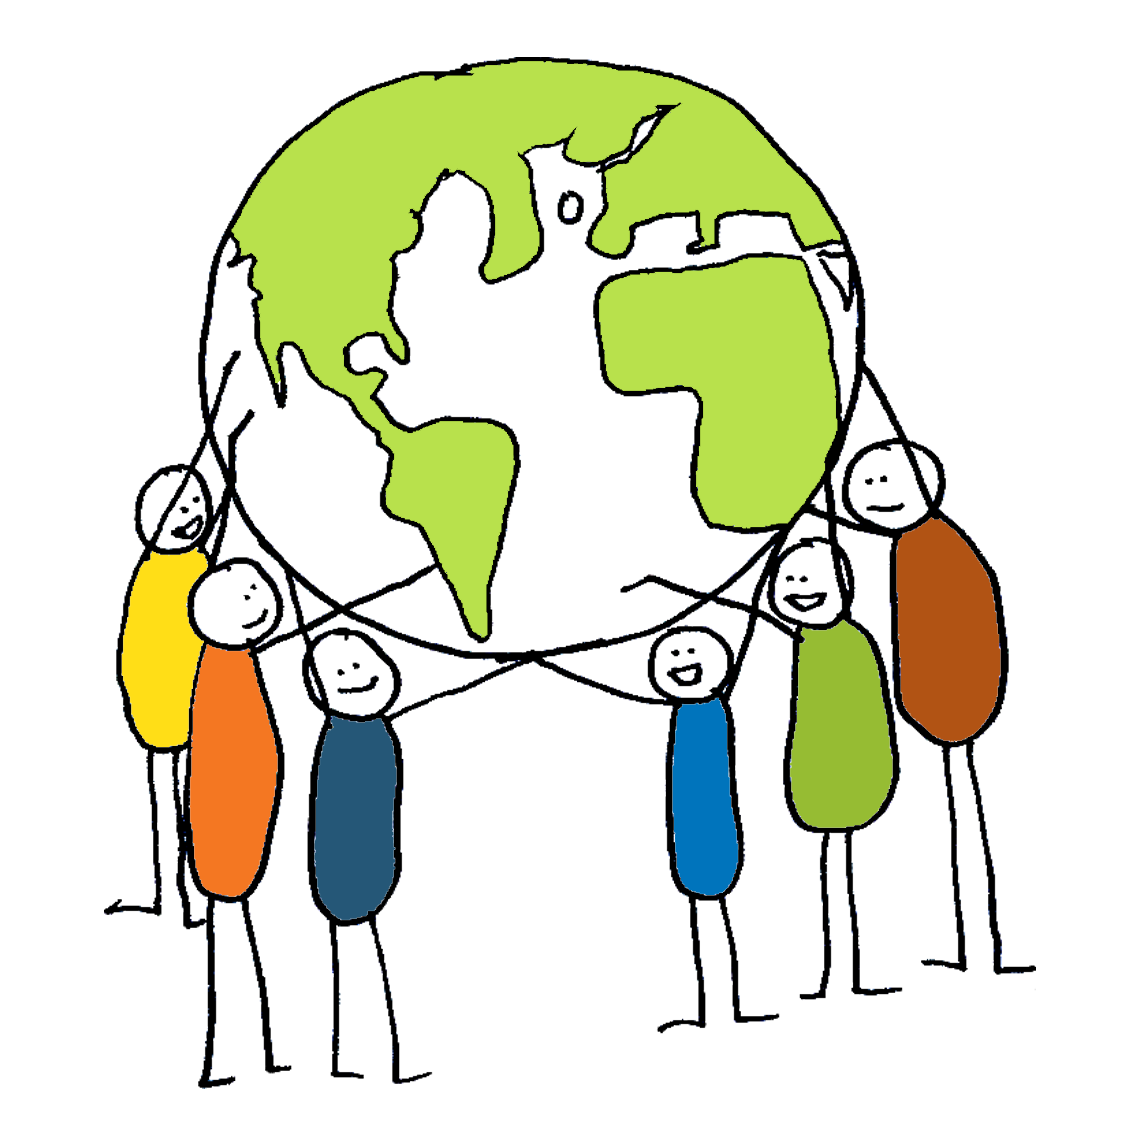 We are envisioning a world where everyone is able to meaningfully participate.